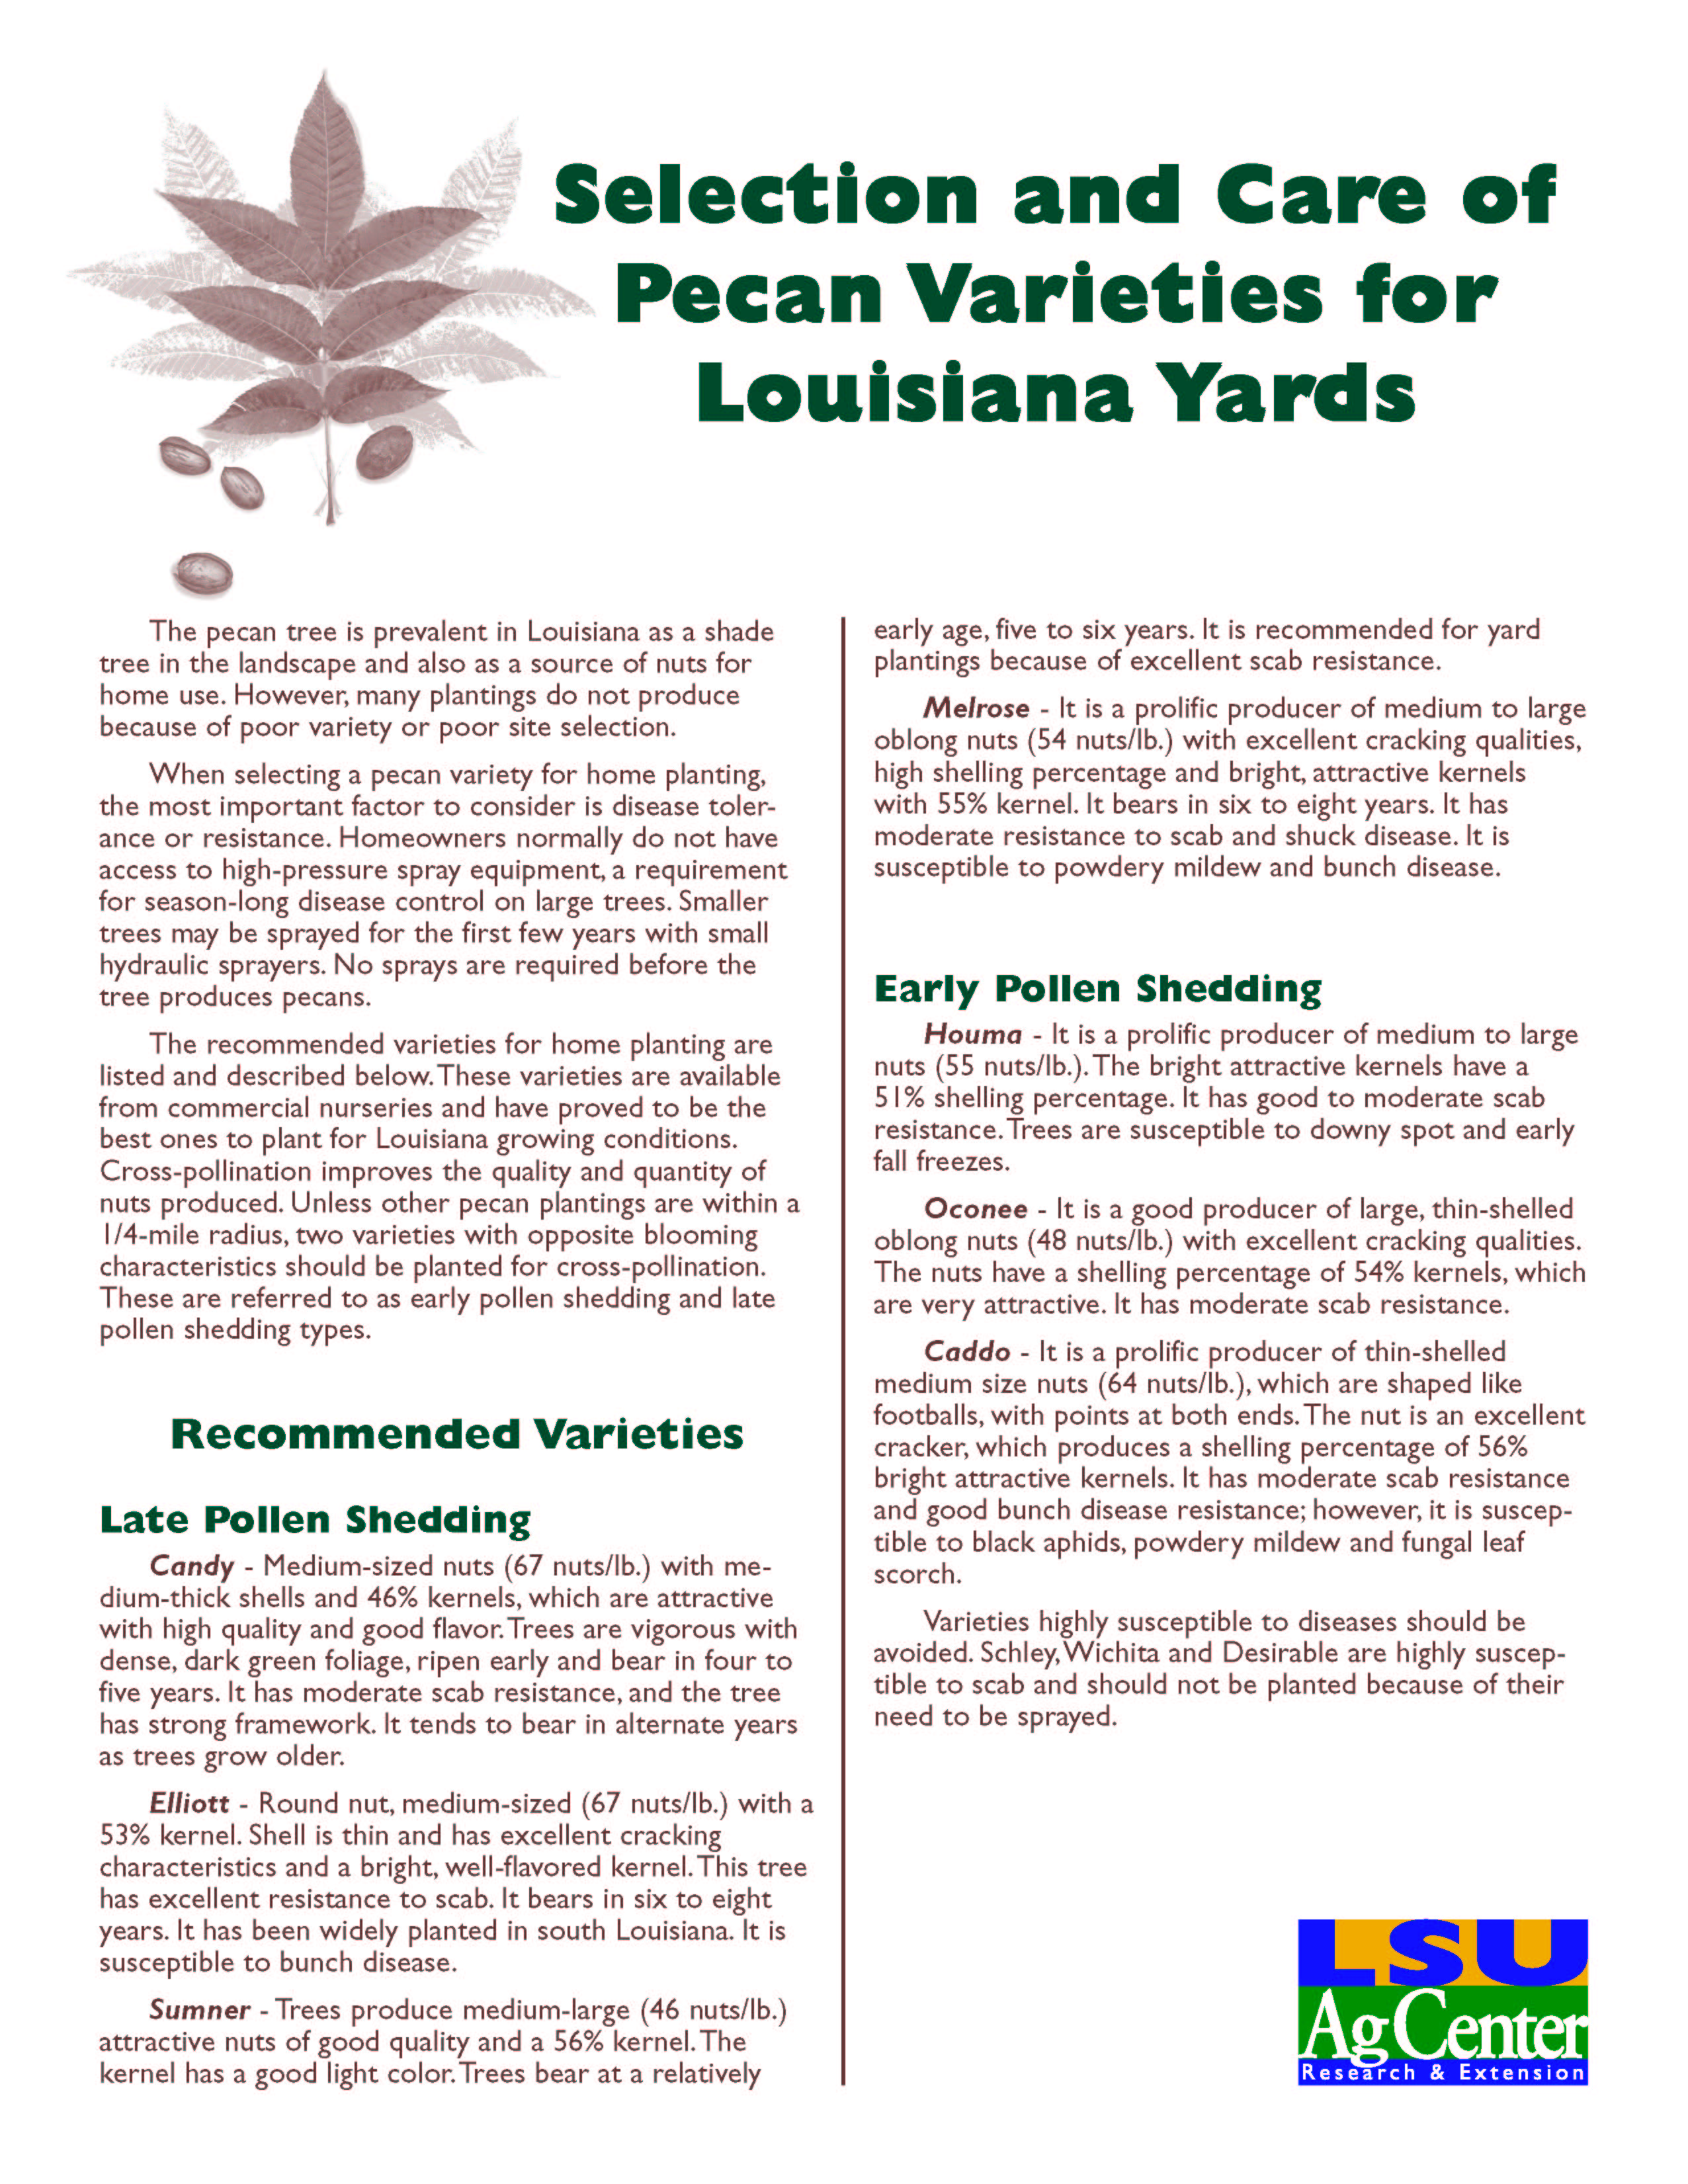 Selection and Care of Pecan Varieties for Louisiana Yards